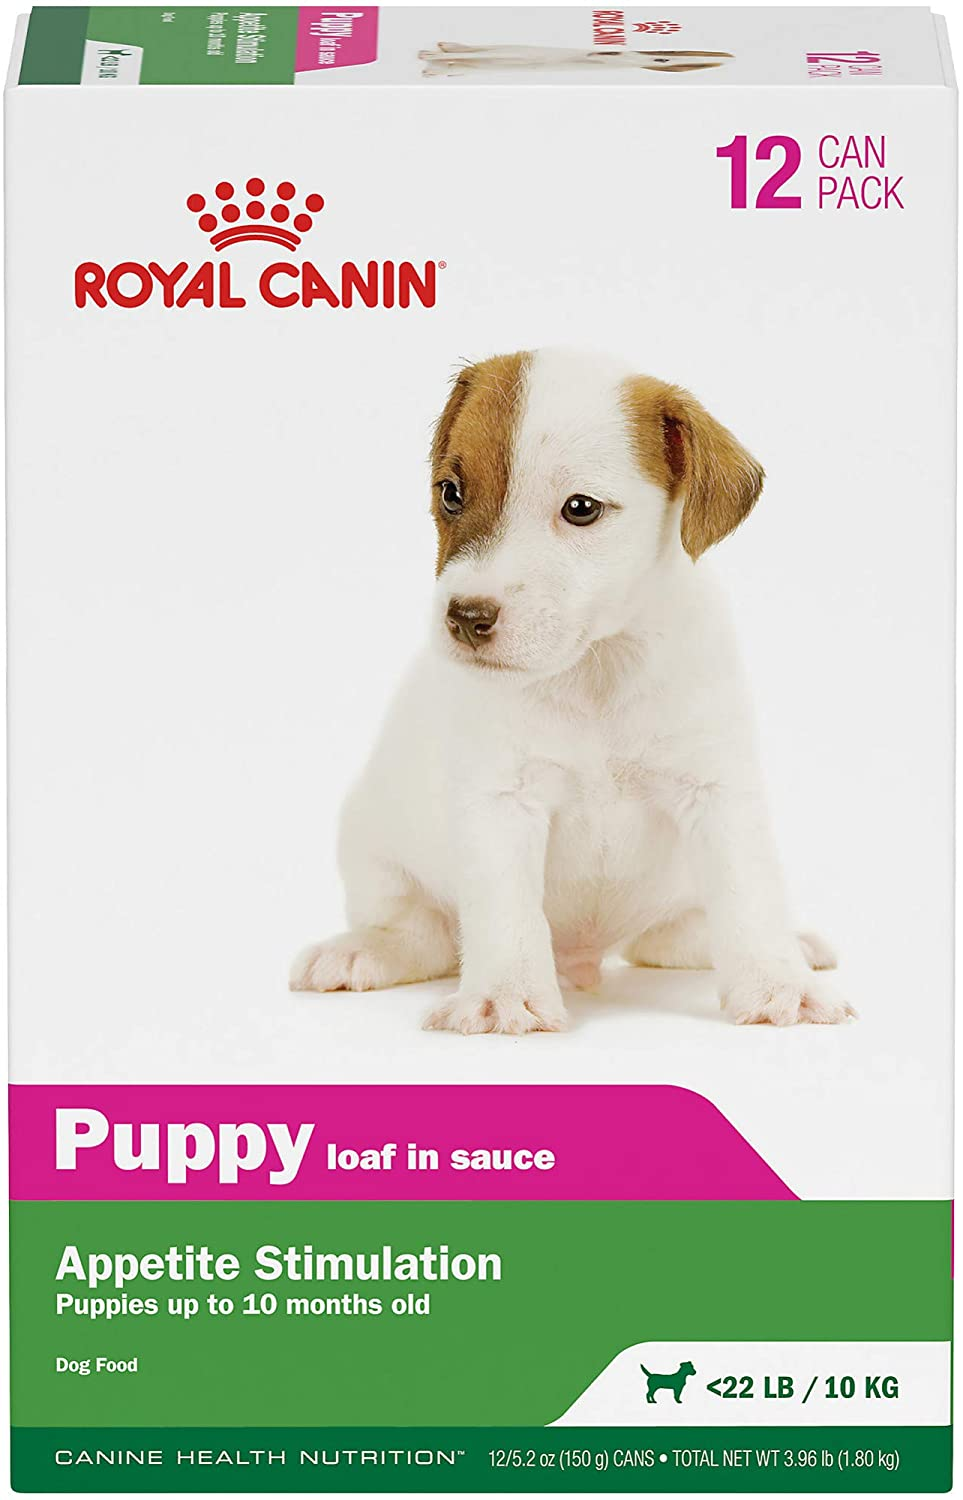 Royal Canin Canine Health Nutrition Puppy Loaf in Sauce Canned Dog Food, 5.2 oz Can (Pack of 12)